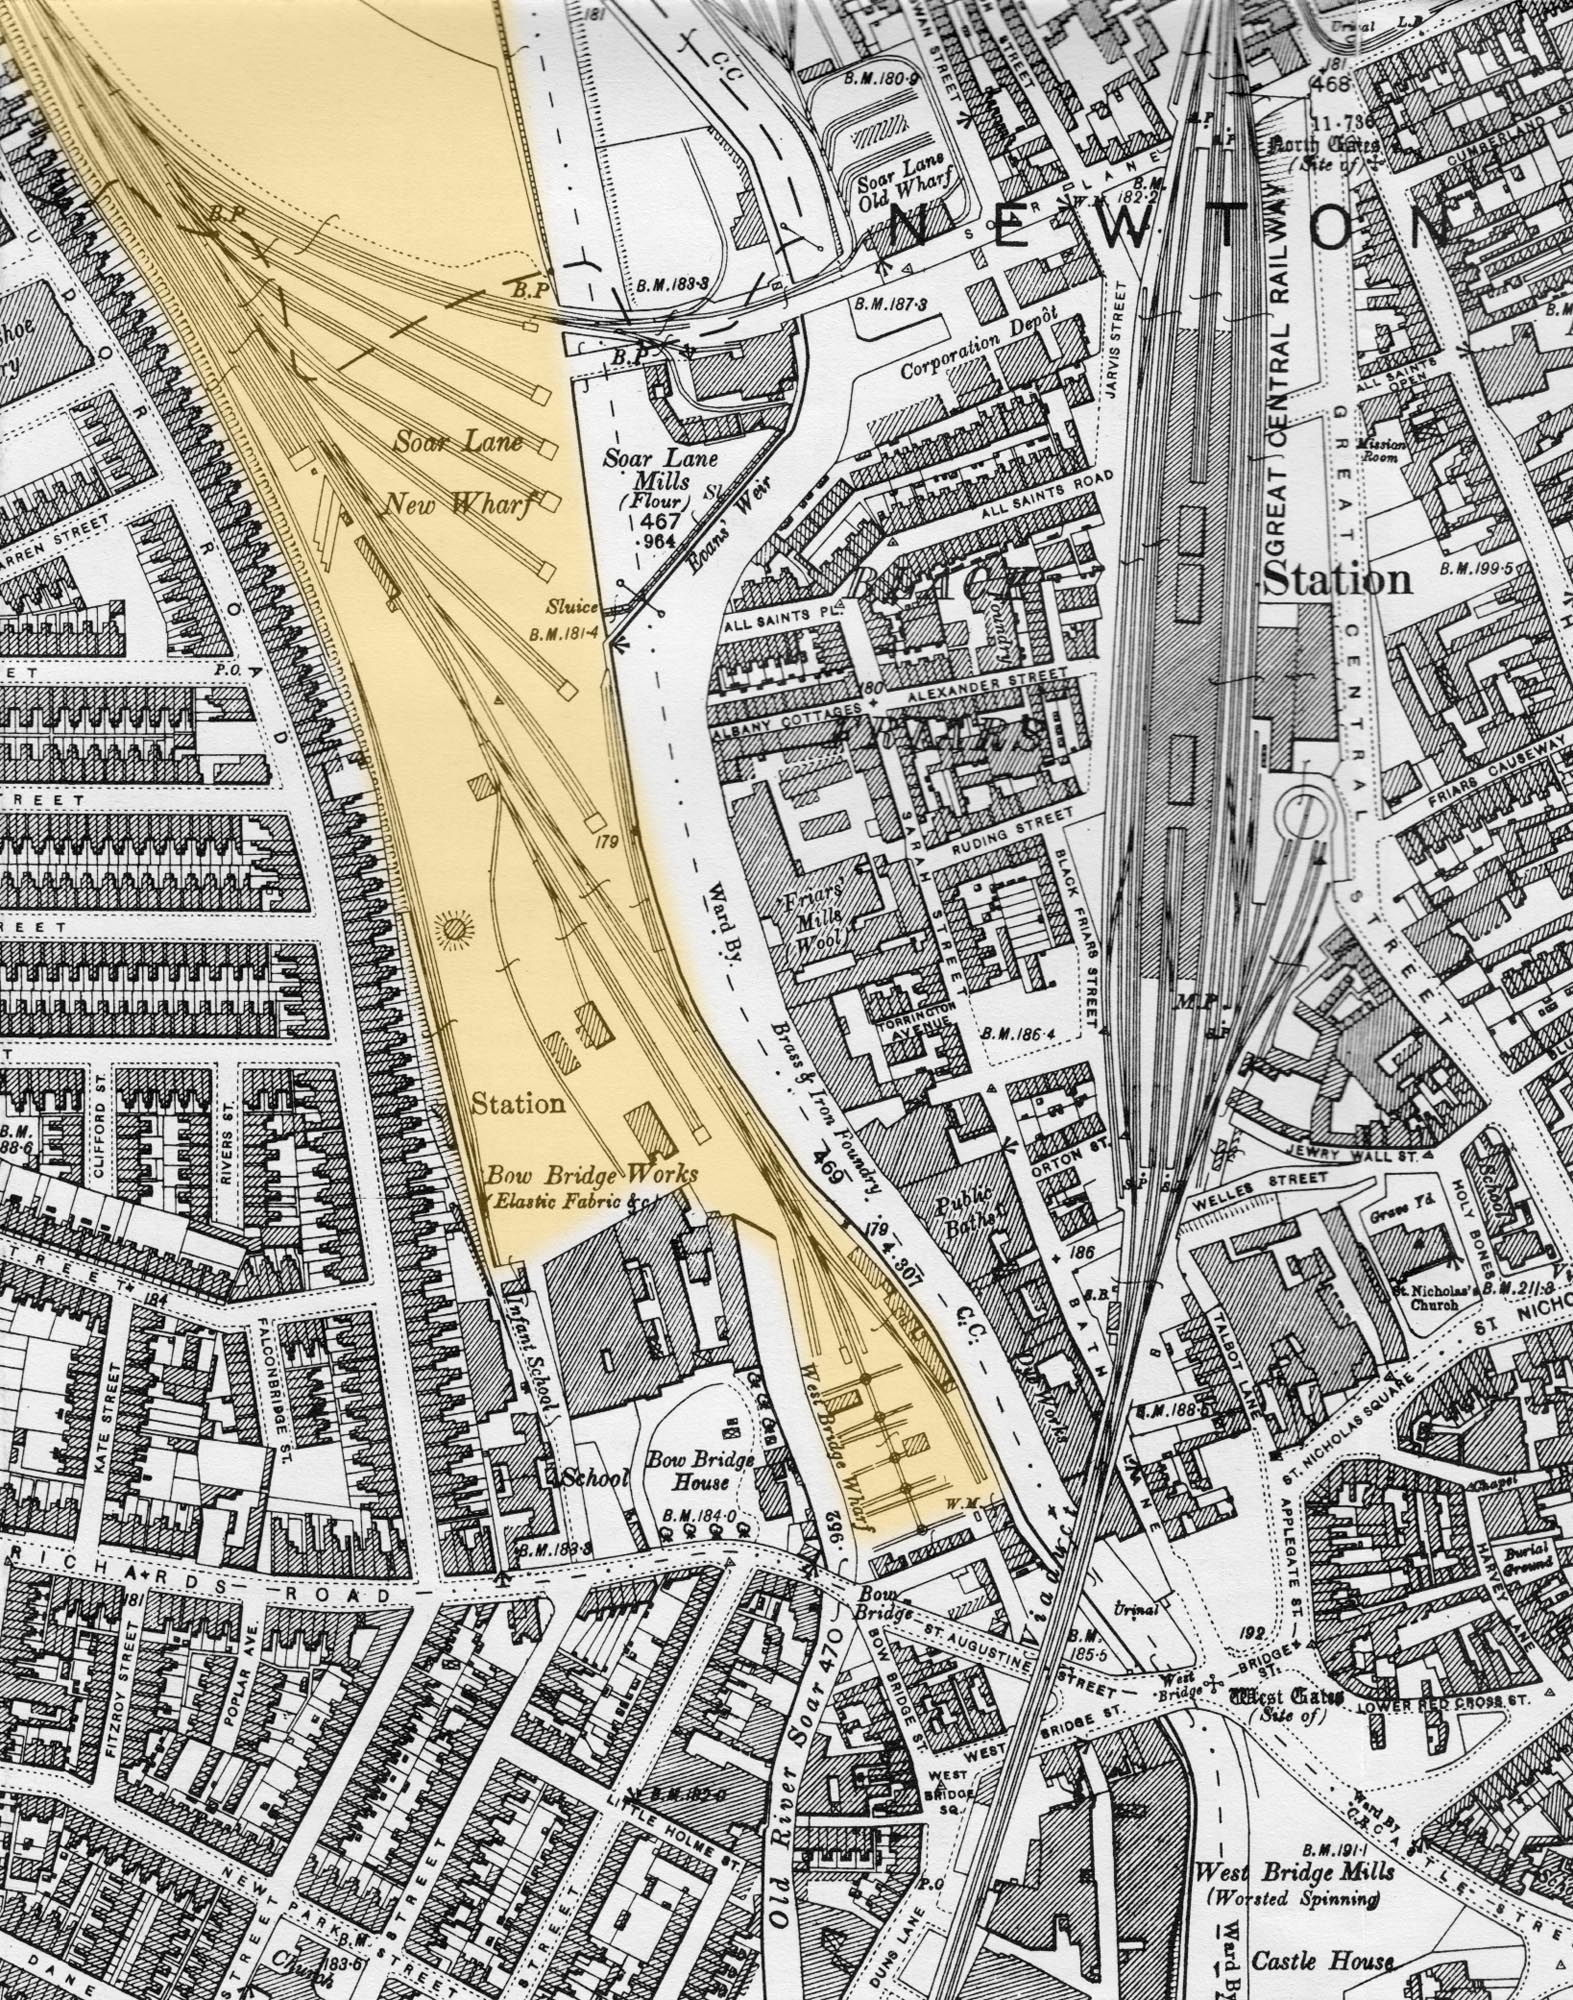 Map showing the West Bridge Station and railway sidings highlighted in yellow -